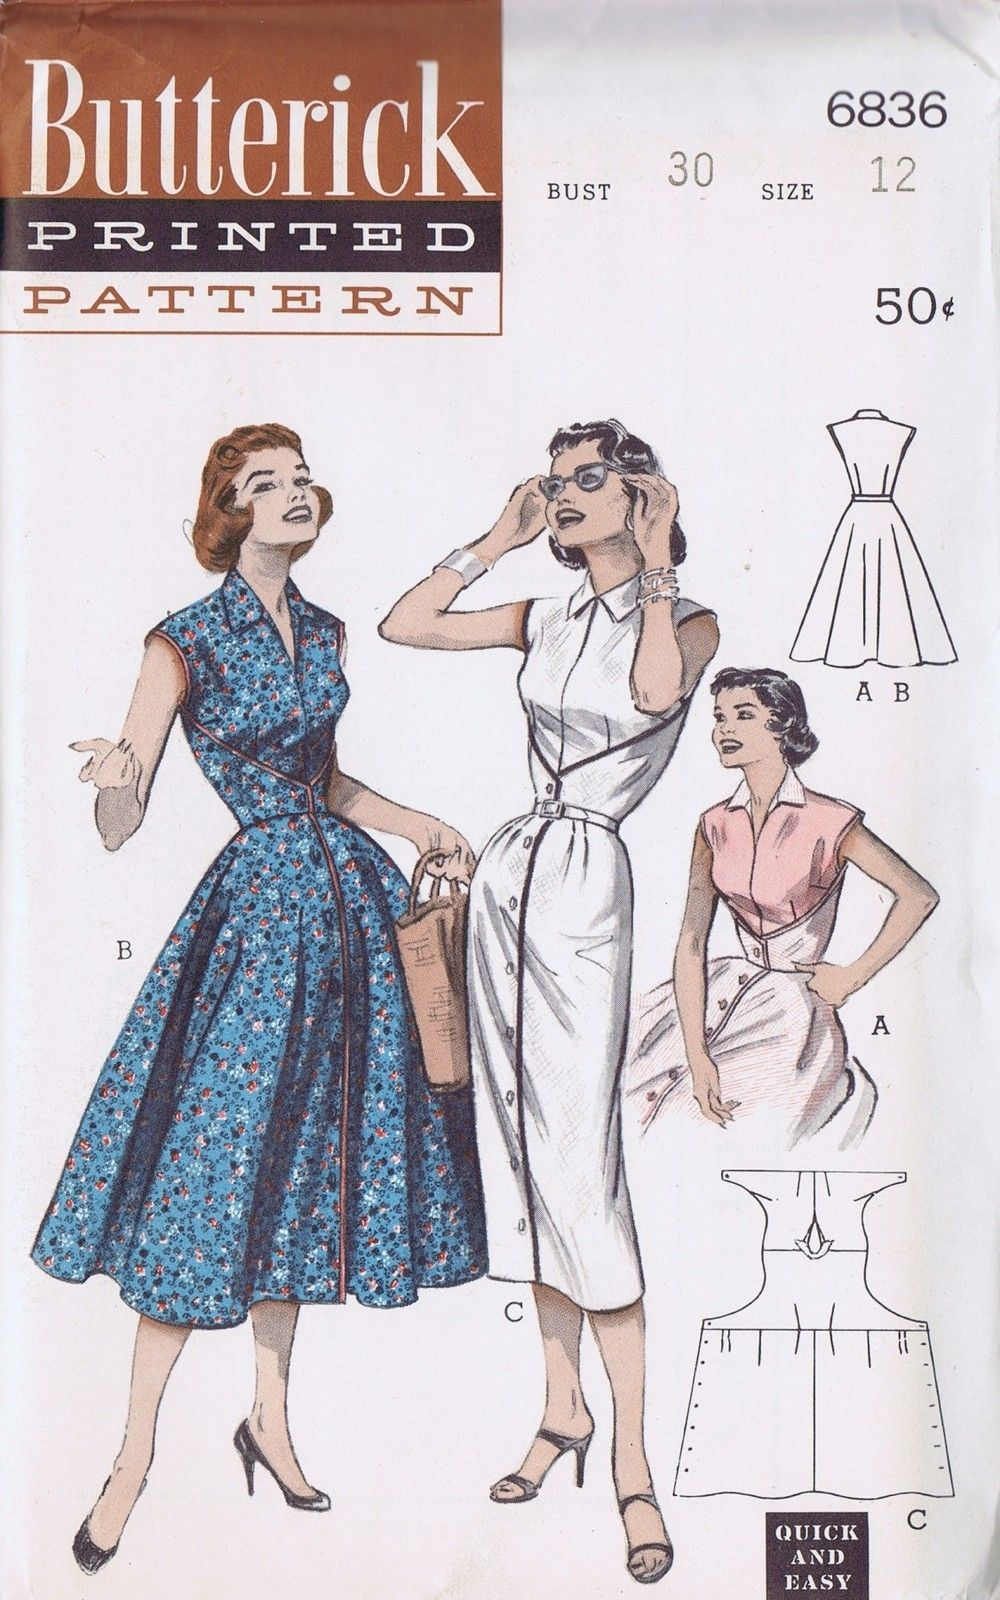 VINTAGE WRAP DRESS SEWING PATTERN 6836 BUTTERICK 50s SZ 12 BUST 30 ...